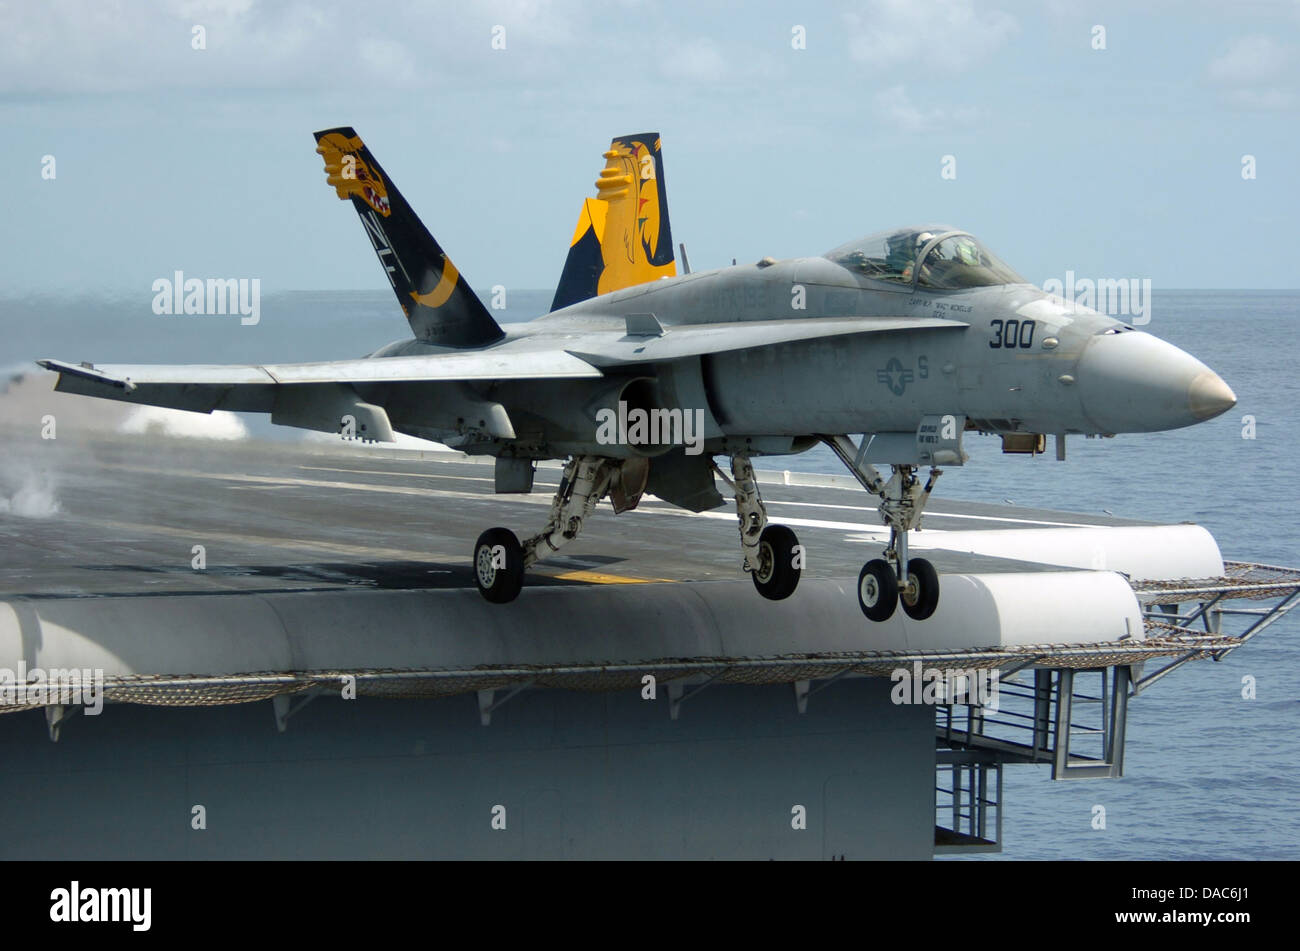 An F-A-18C Hornet launches from the flight deck of the conventionally powered aircraft carrier - Stock Image